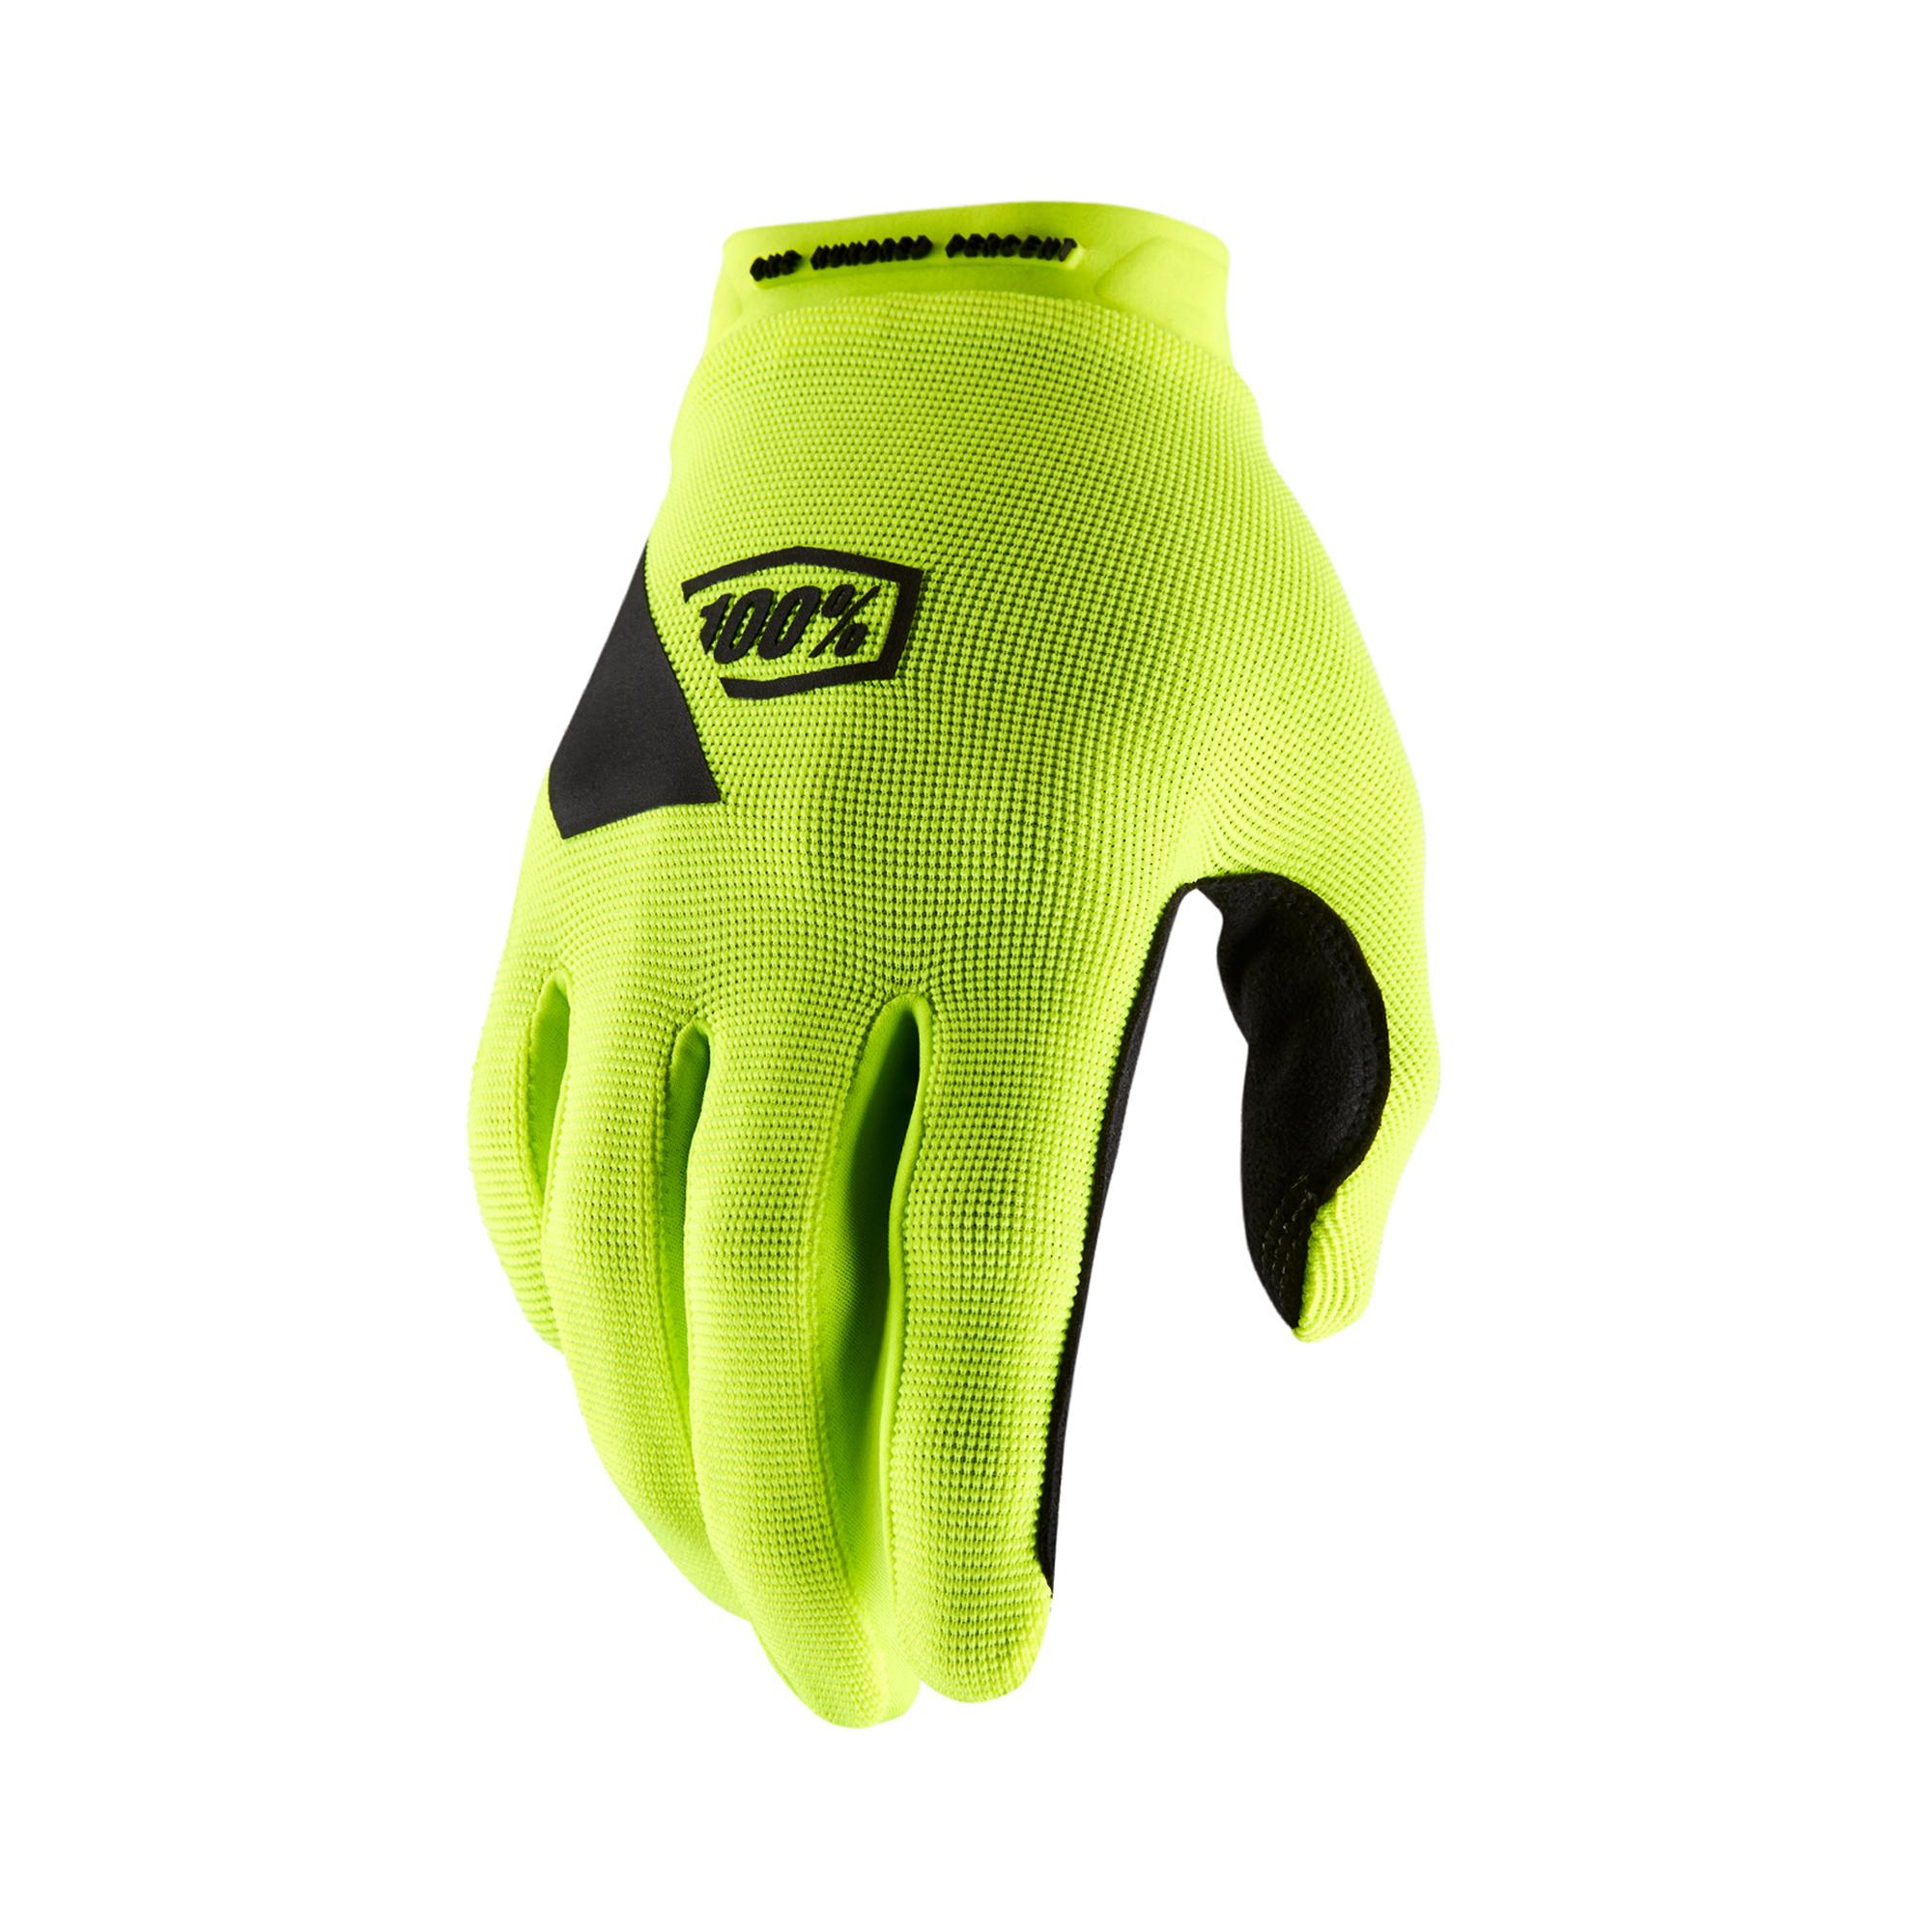 RIDECAMP Glove Fluo Yellow -